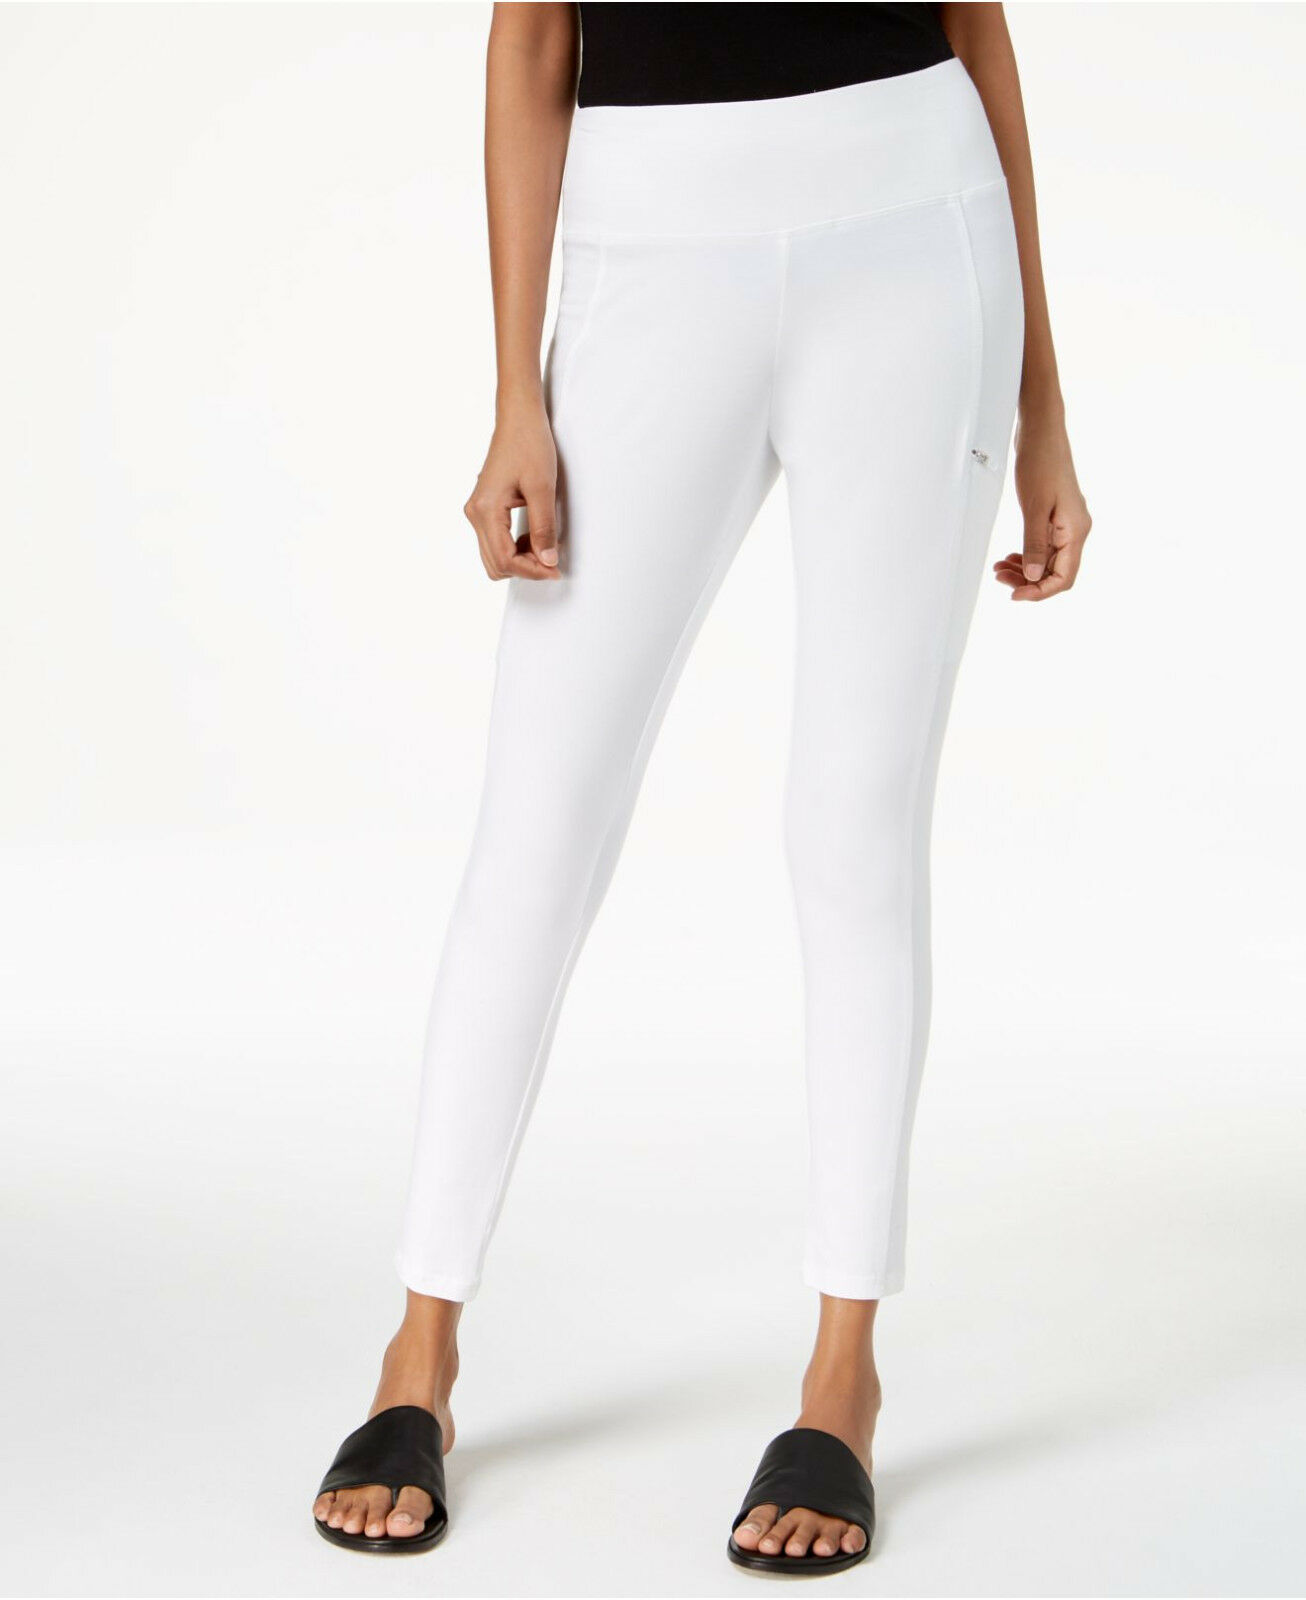 Eileen Fisher White Organic Cotton Pull-On Stretch Knit Skinny Pants  S